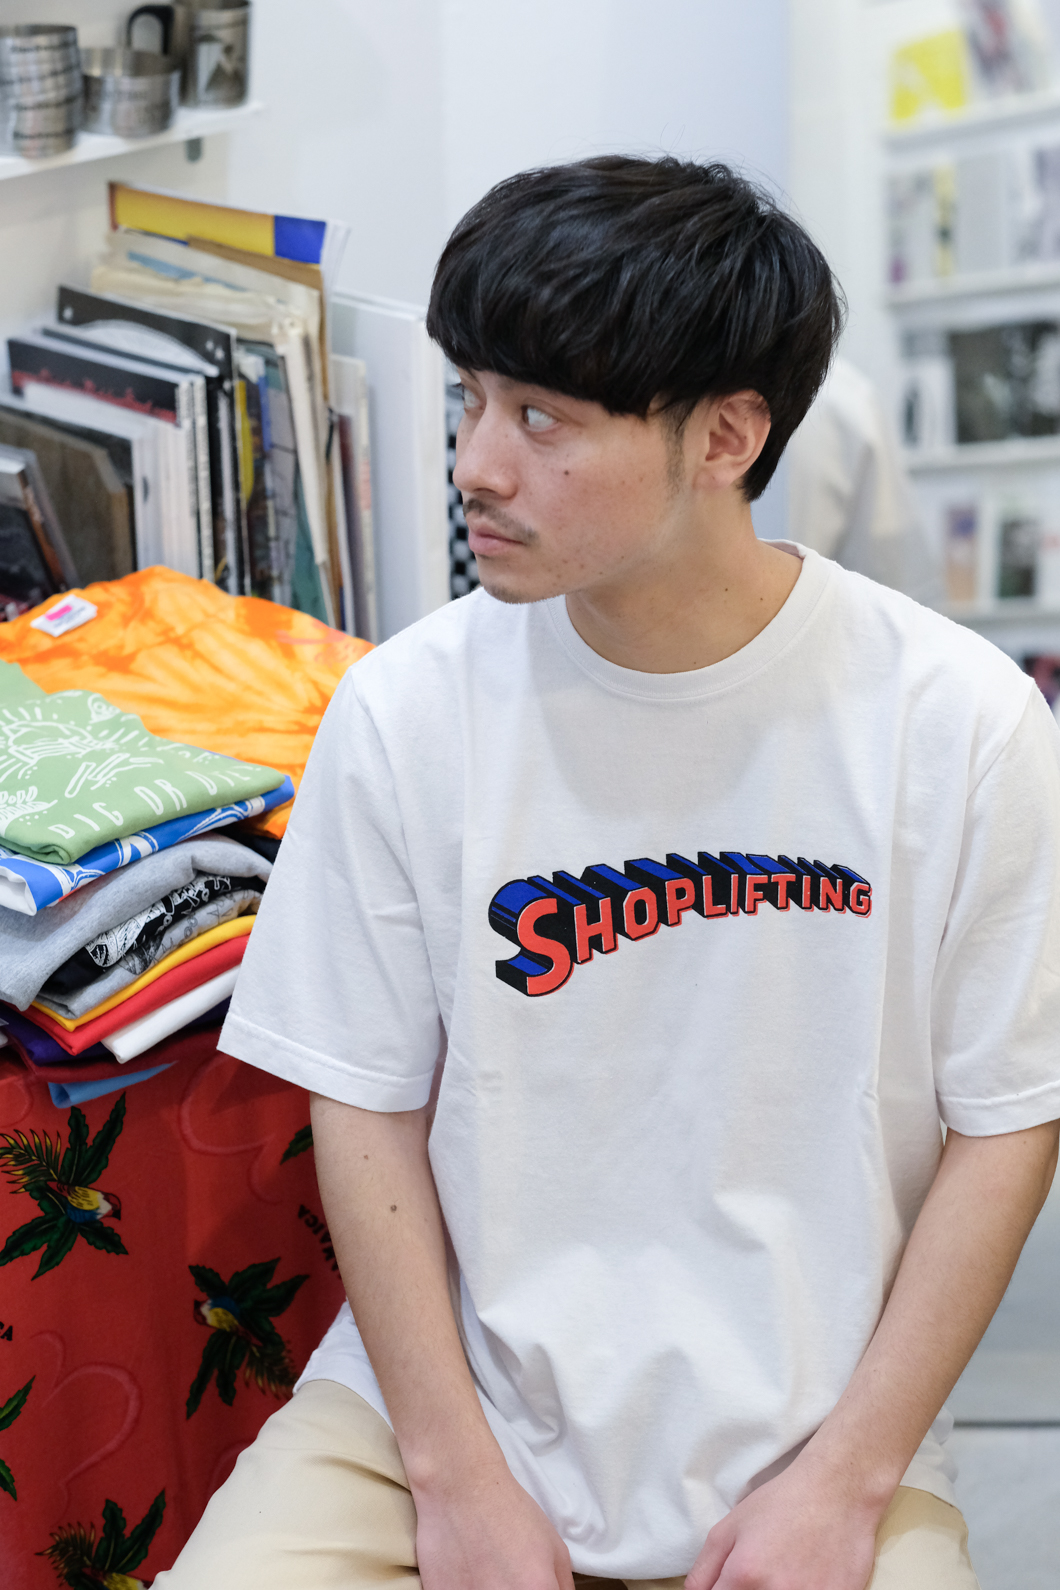 【RAISED BY WOLVES/レイズドバイウルブス】SHOPLIFTING TEE Tシャツ / WHITE